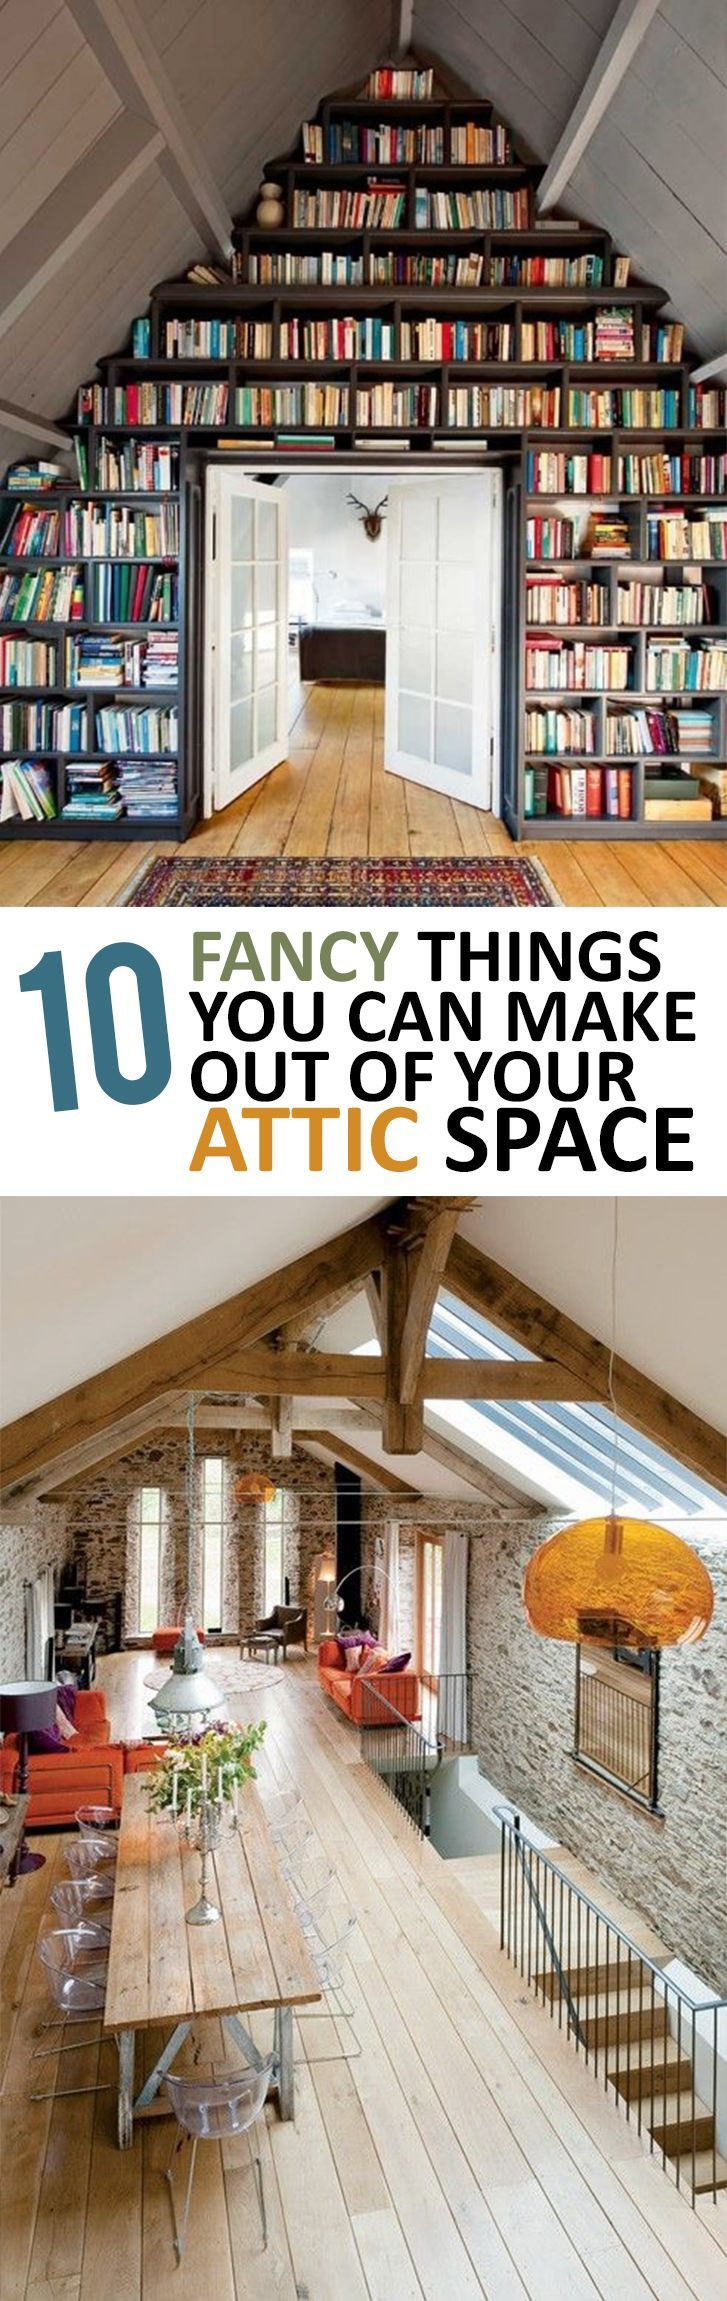 ideas for attic storage closet - 1000 ideas about Attic Spaces on Pinterest